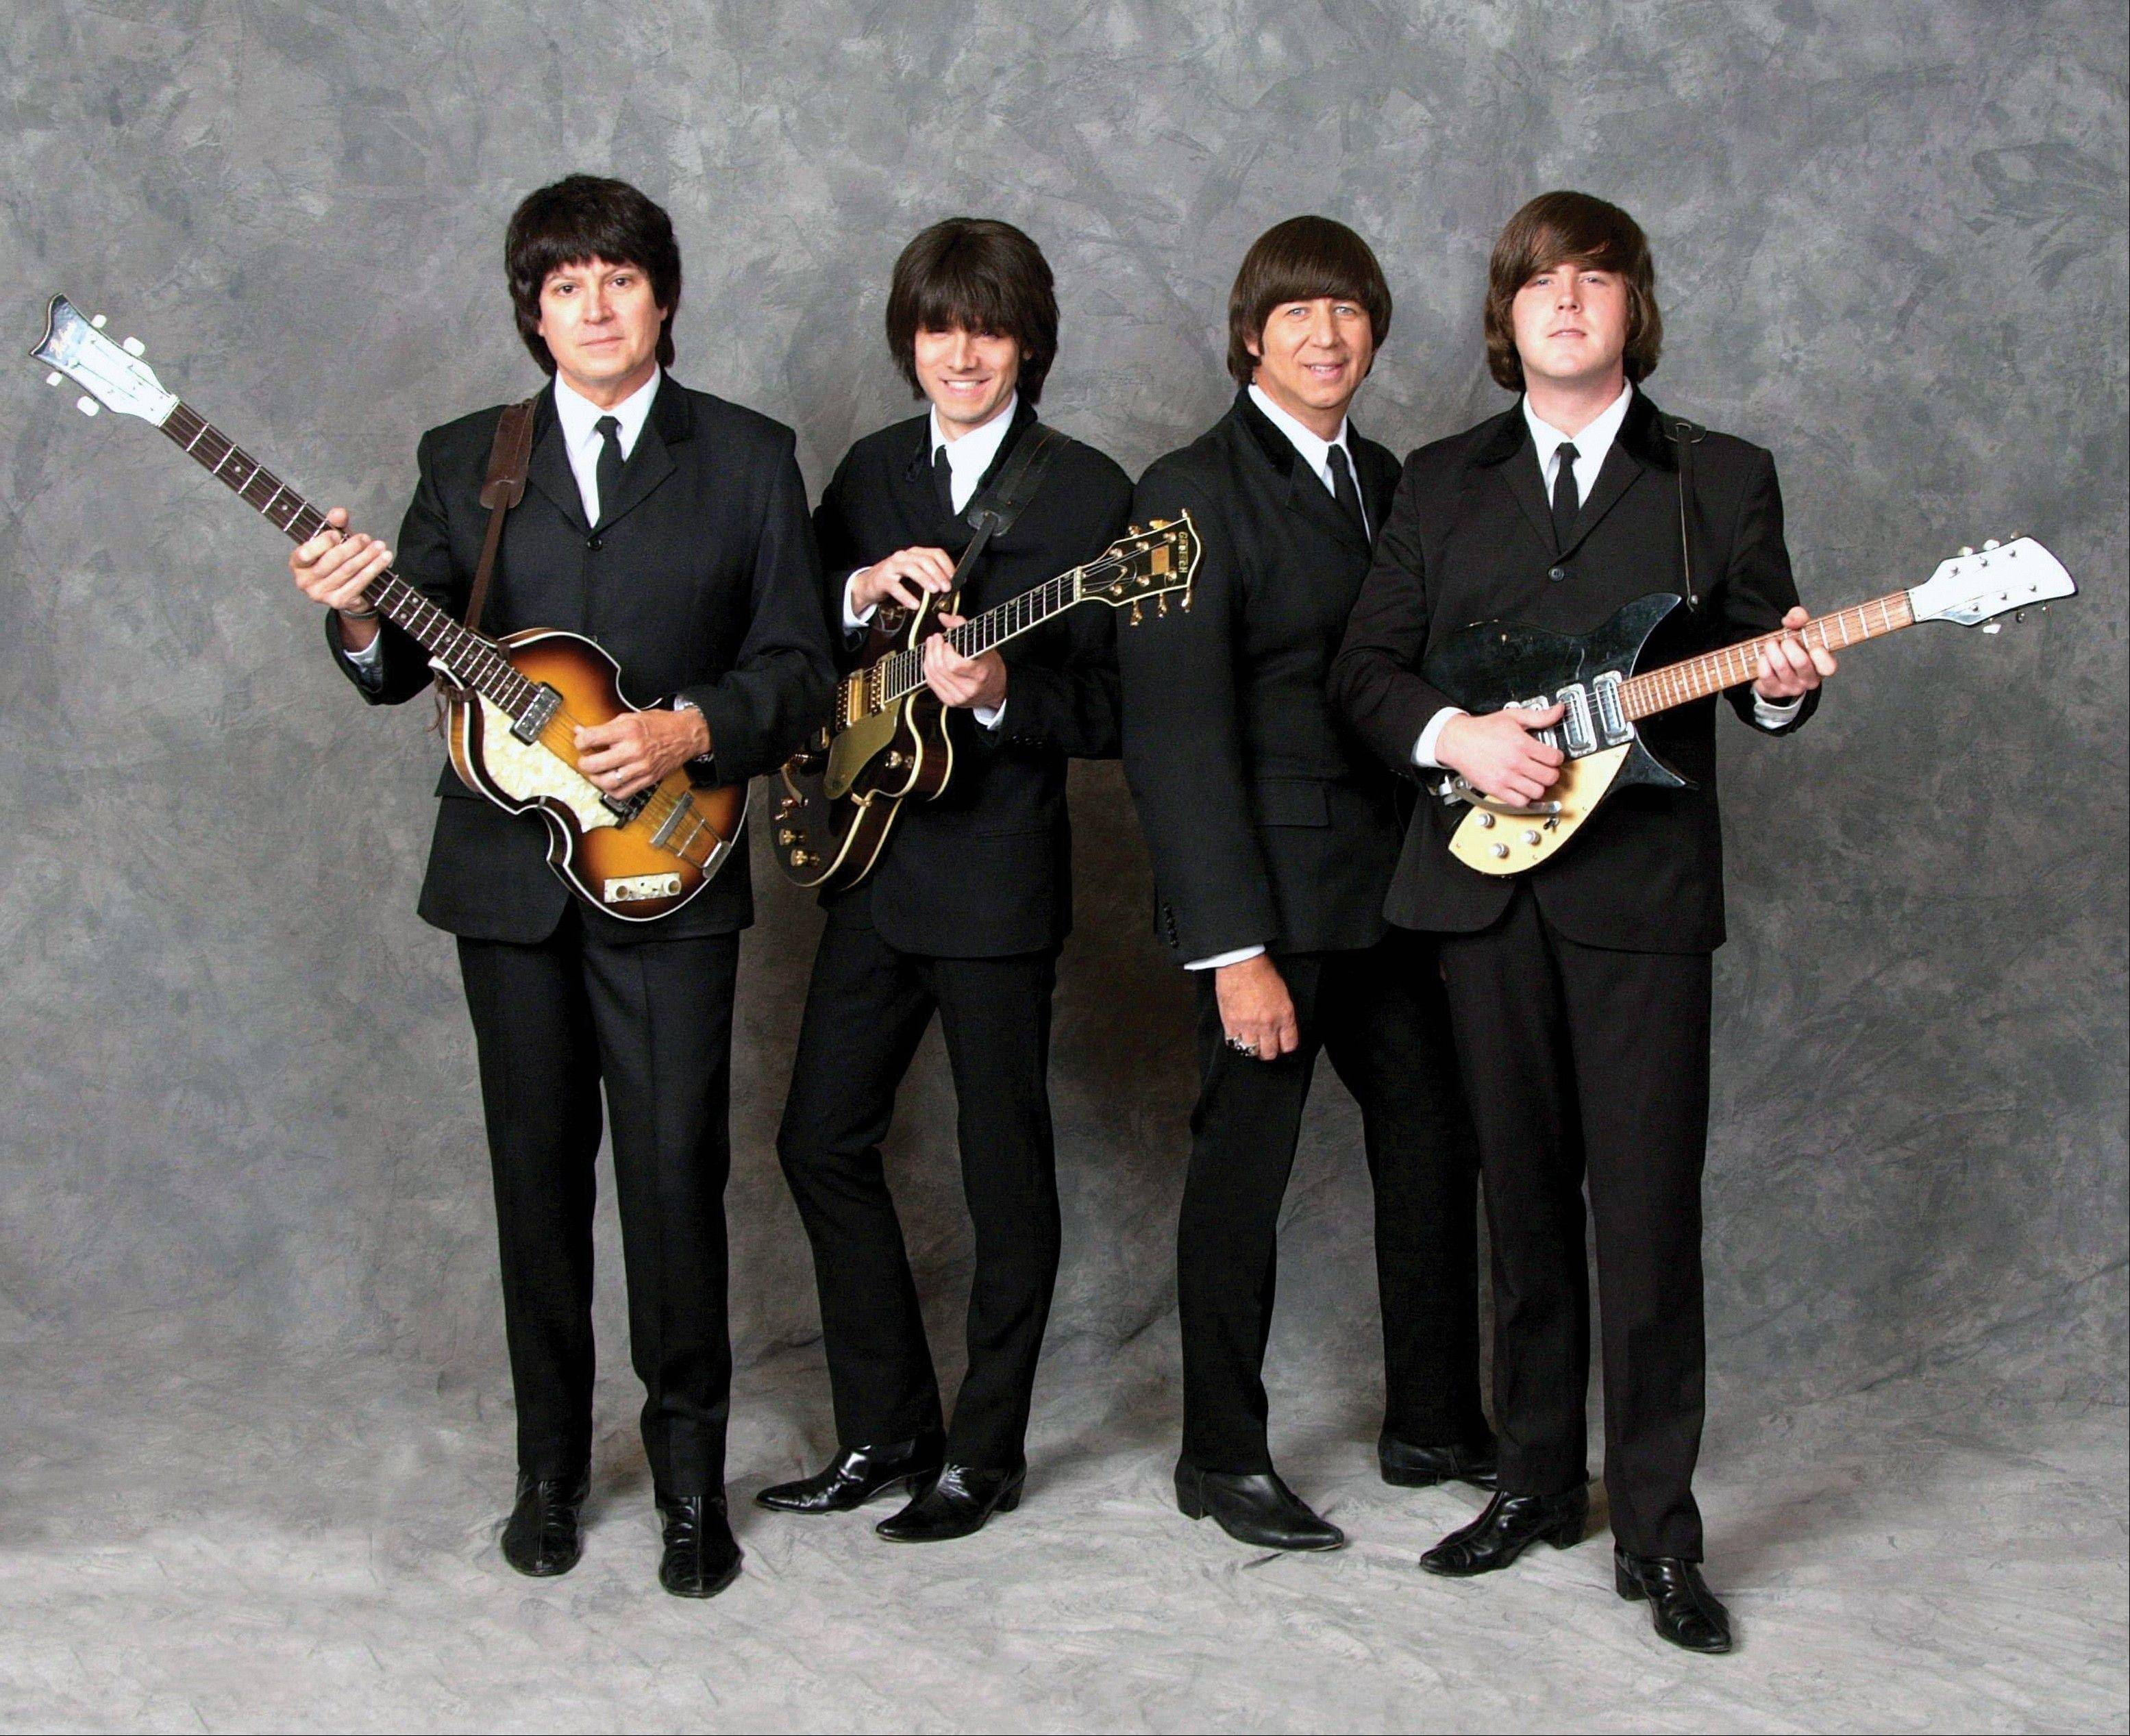 Beatles tribute band American English will perform at Pheasant Run Resort in St. Charles.